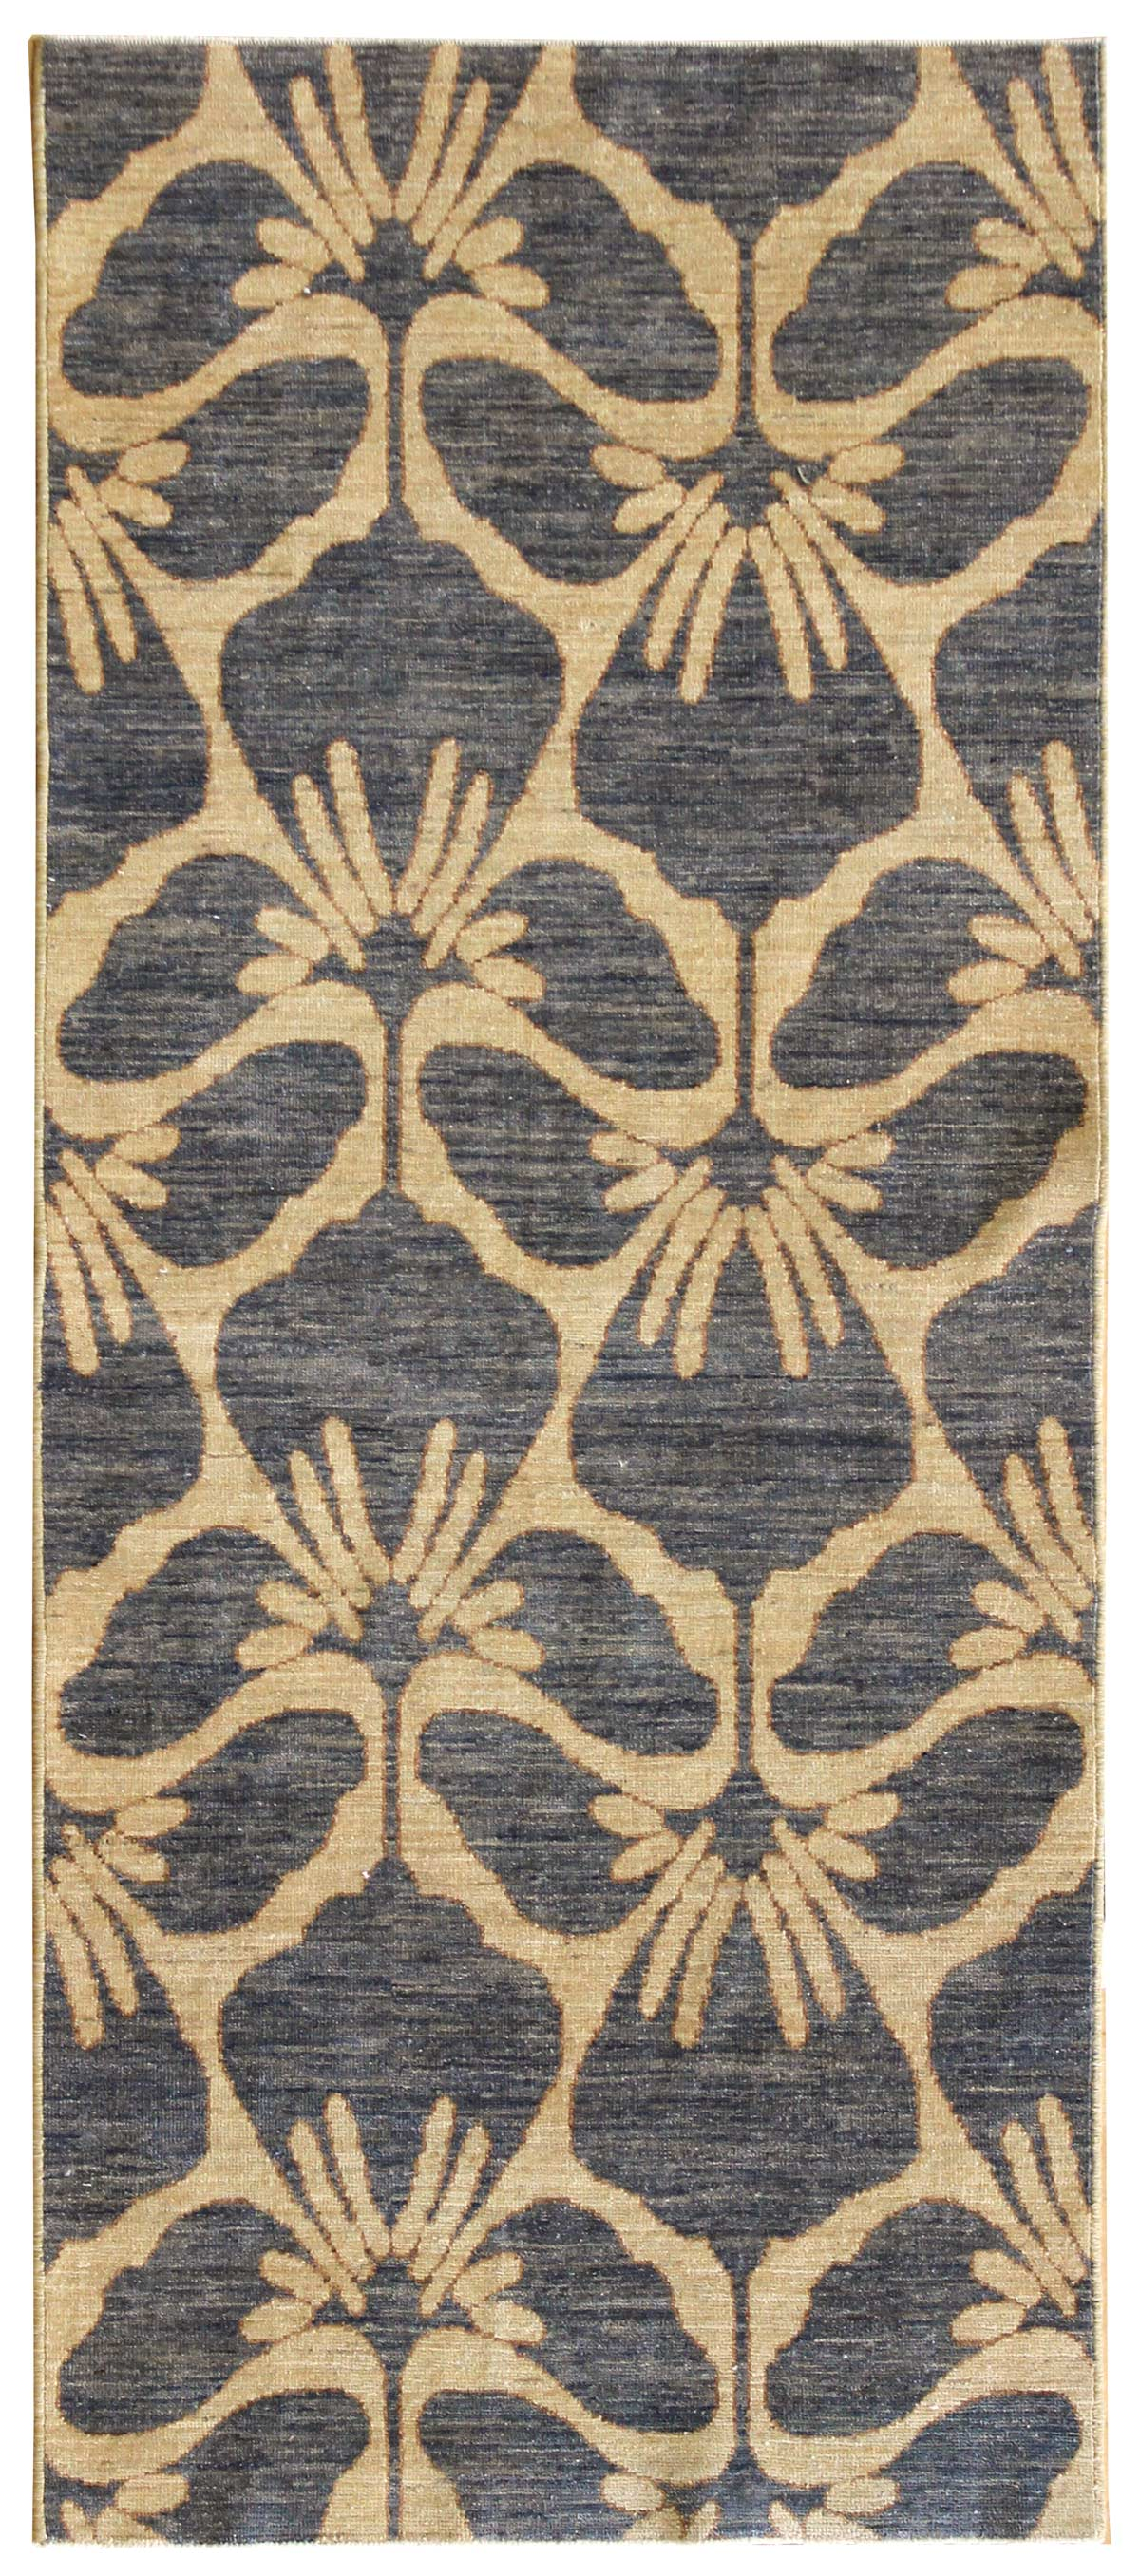 Lily Handwoven Contemporary Rug